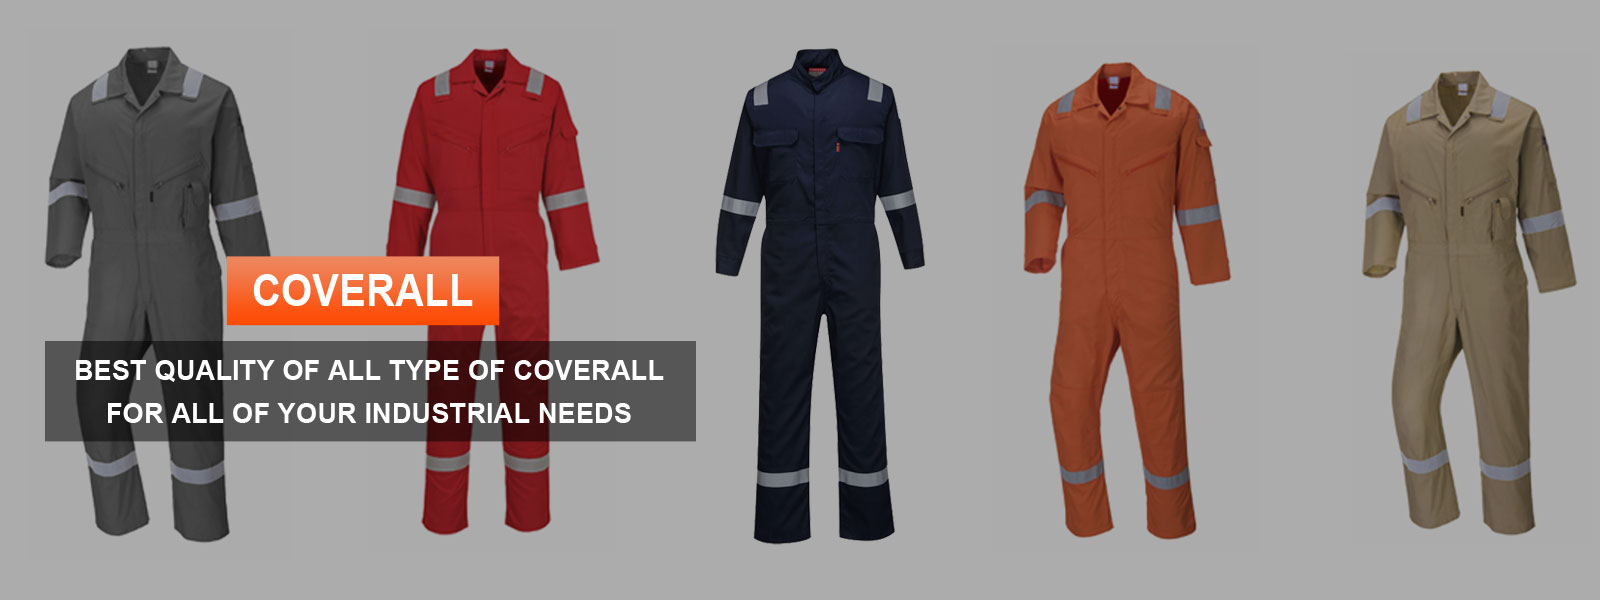 Coverall Manufacturers in Noida